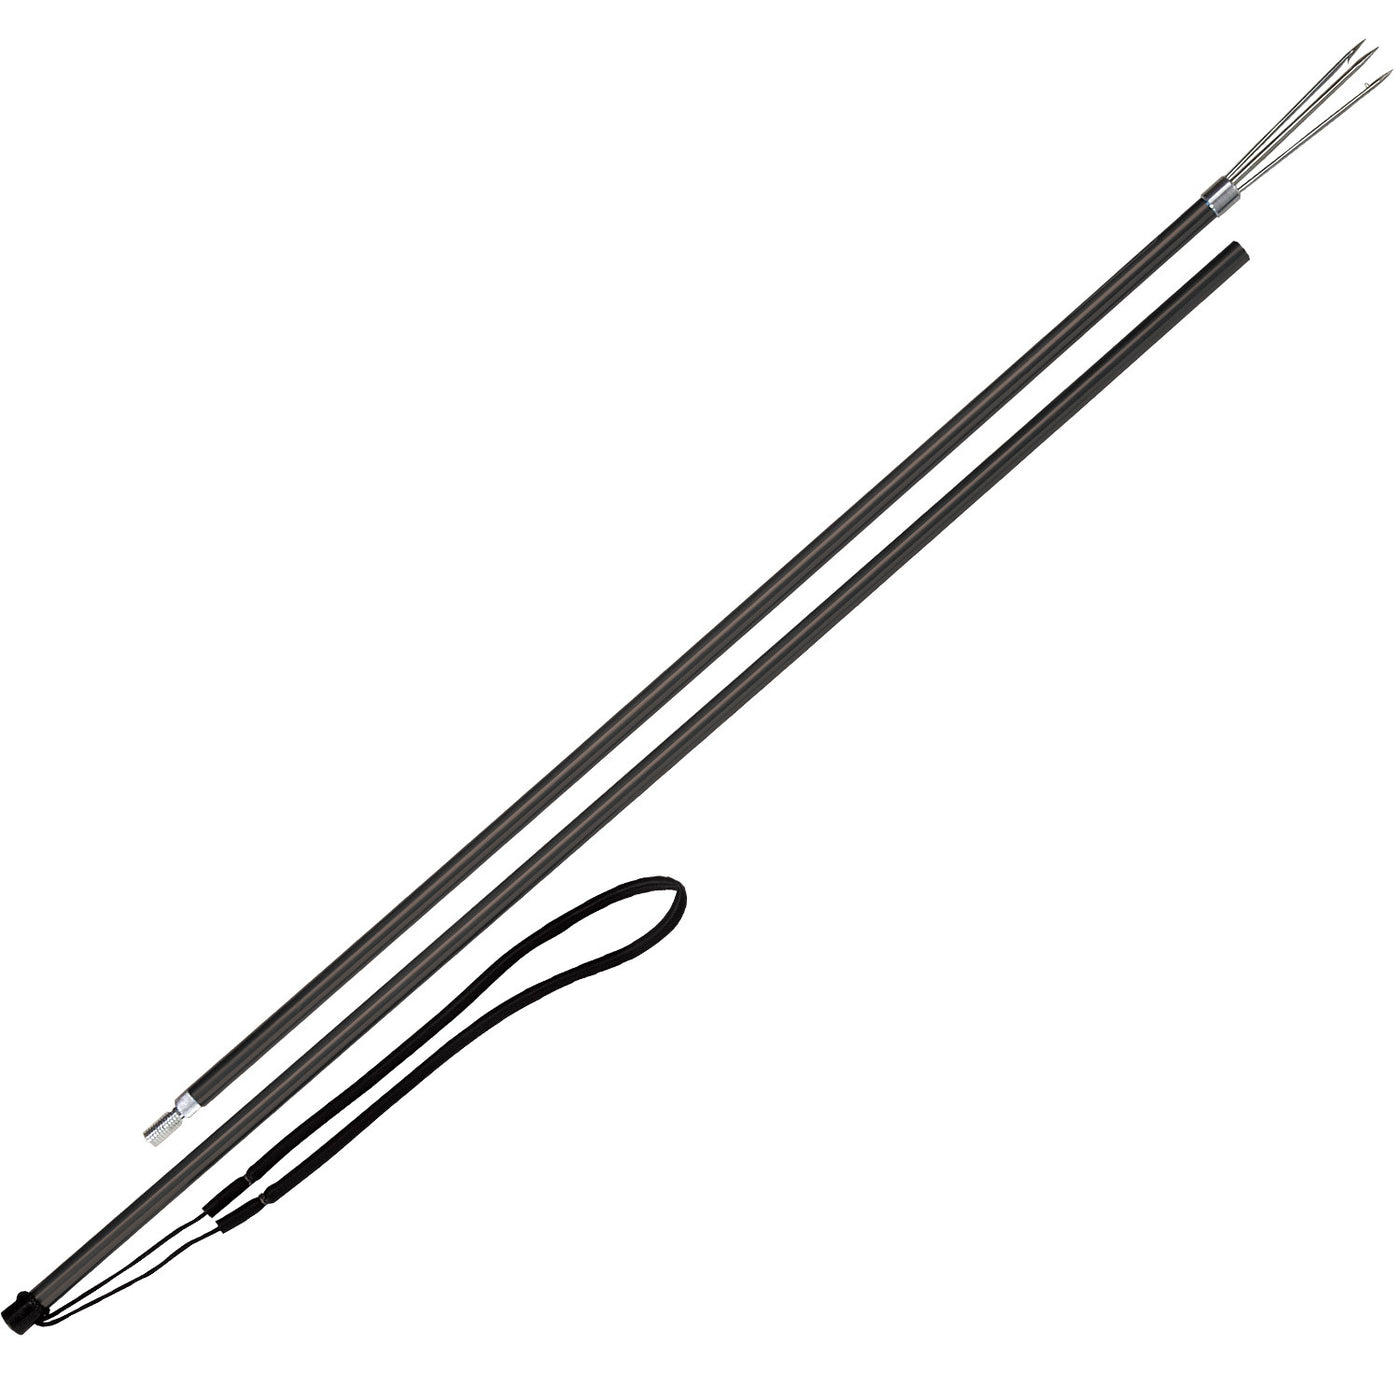 IST Aluminum 2 Segment Pole Spear with 3-Prong Paralyzer Tip